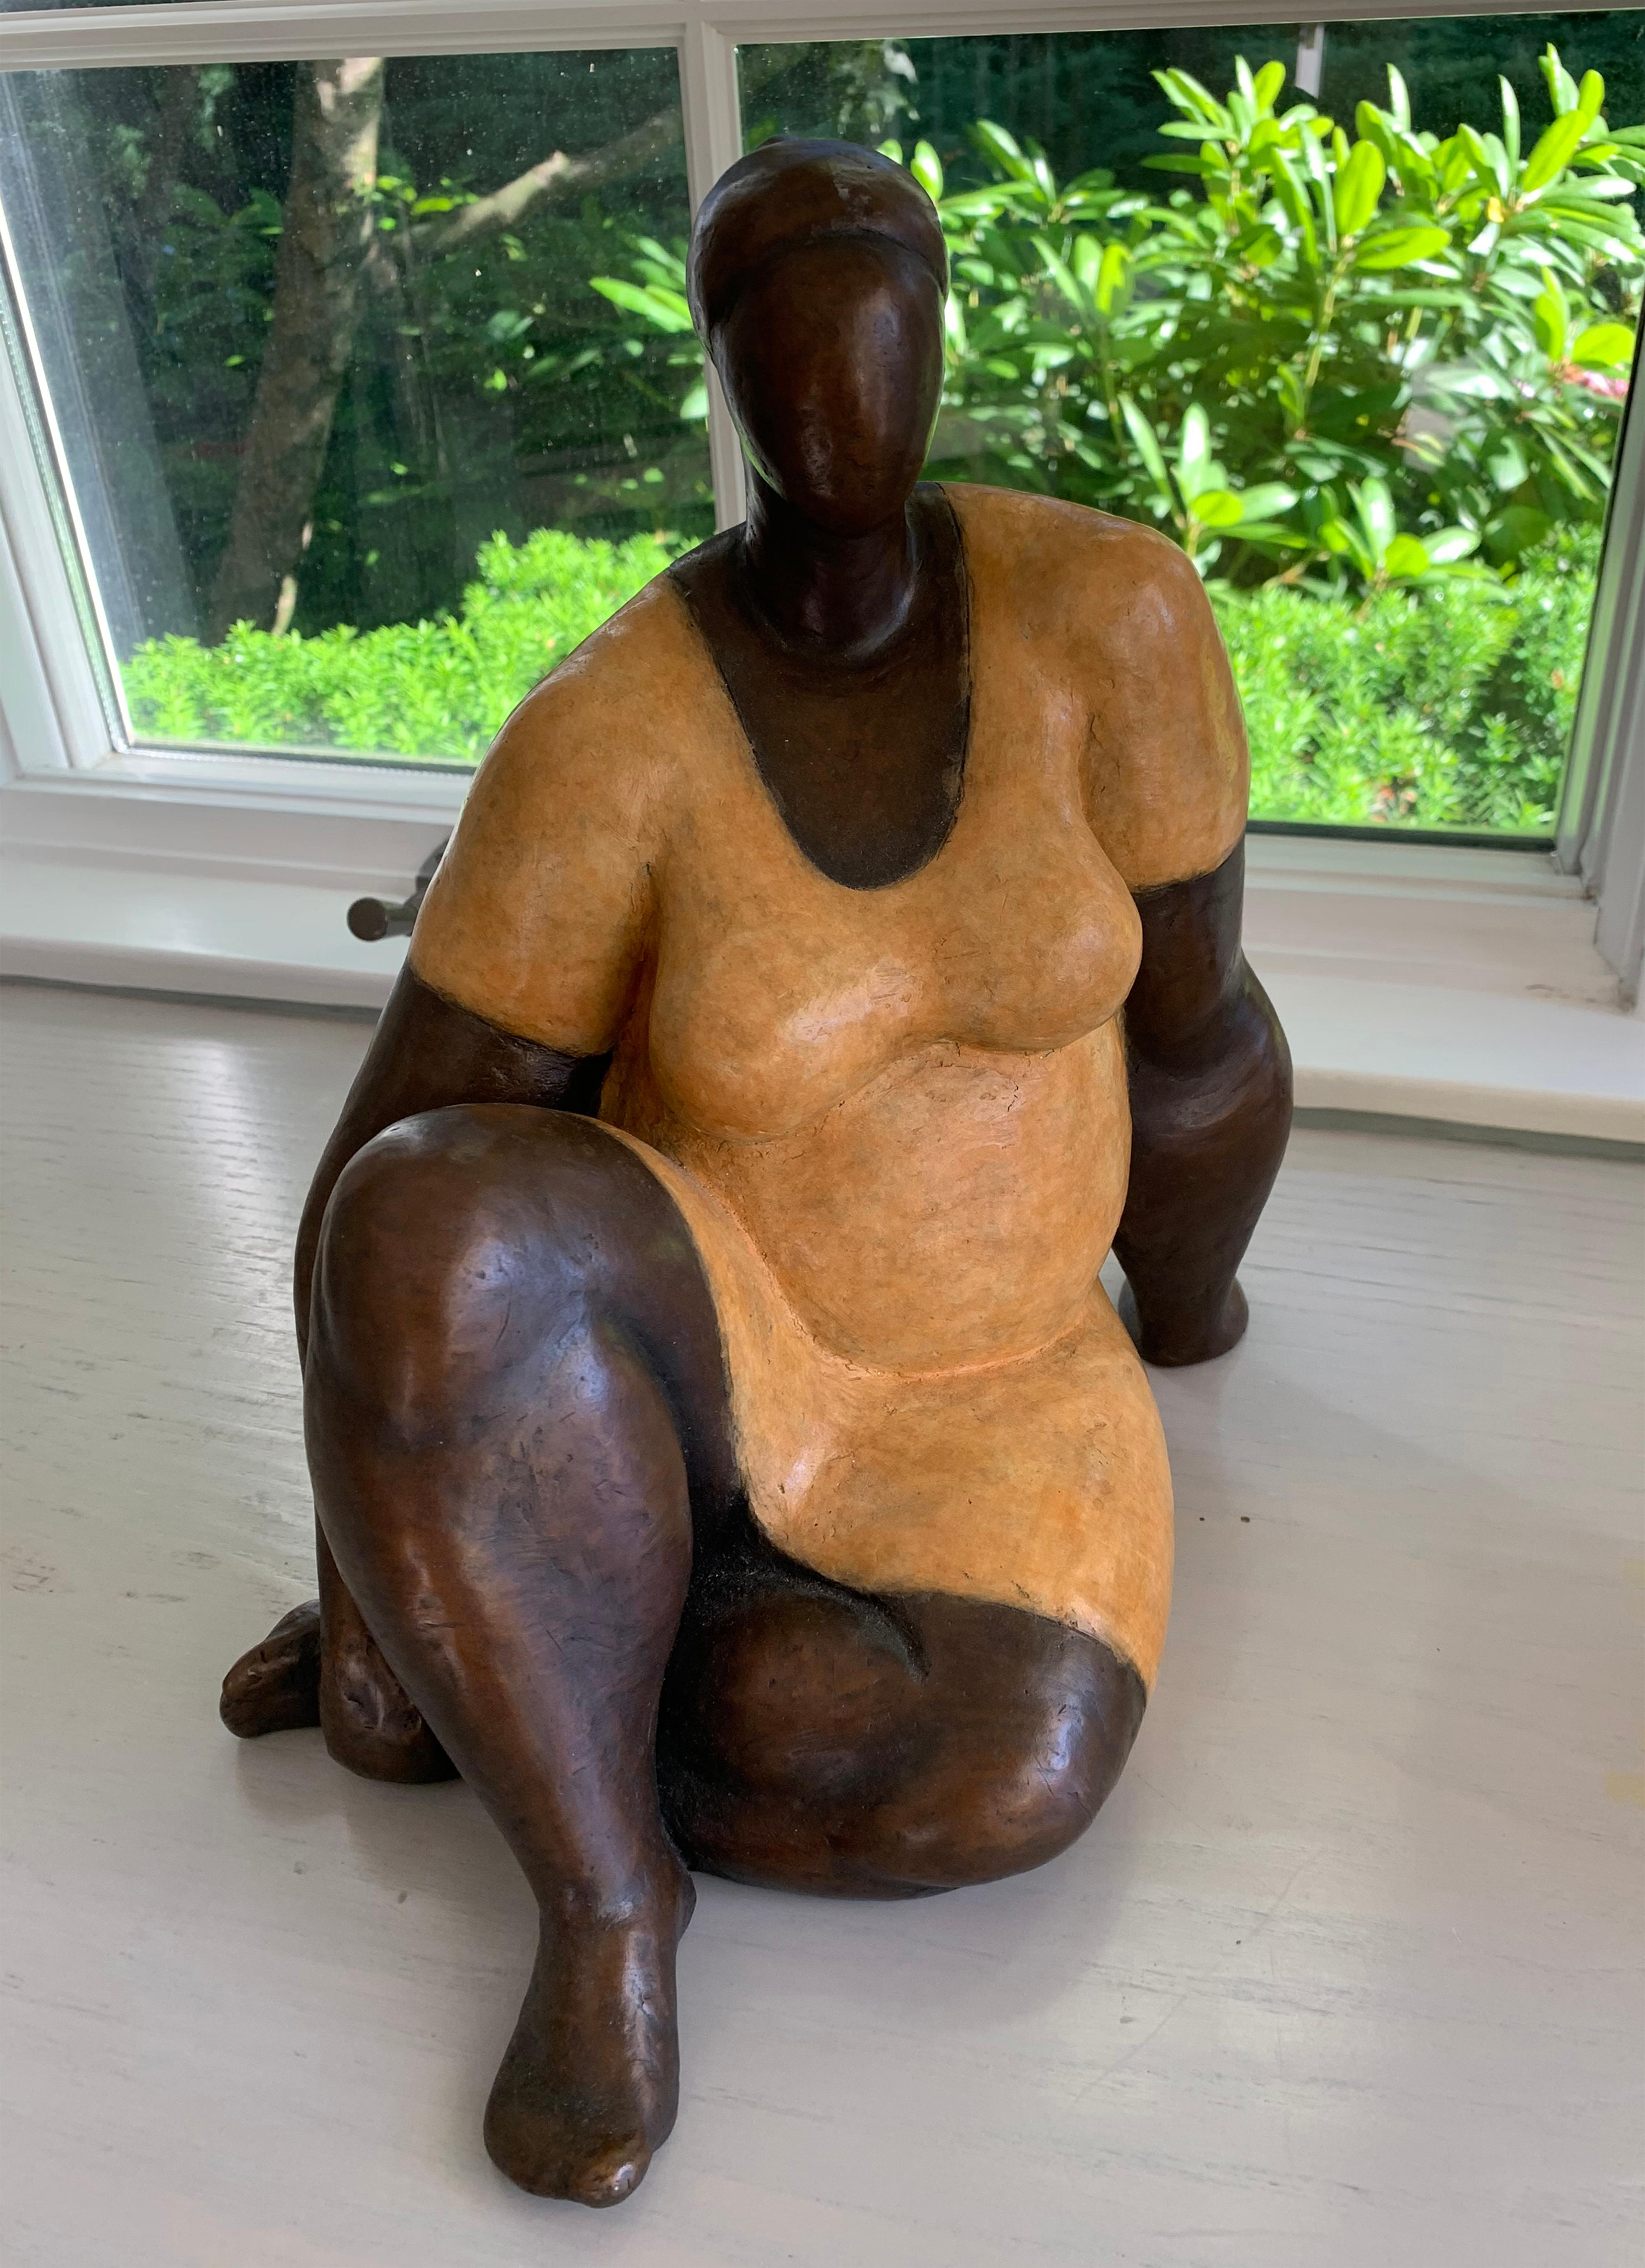 'Damsel' Cast Bronze Sculpture with Patina and Lacquer Finish